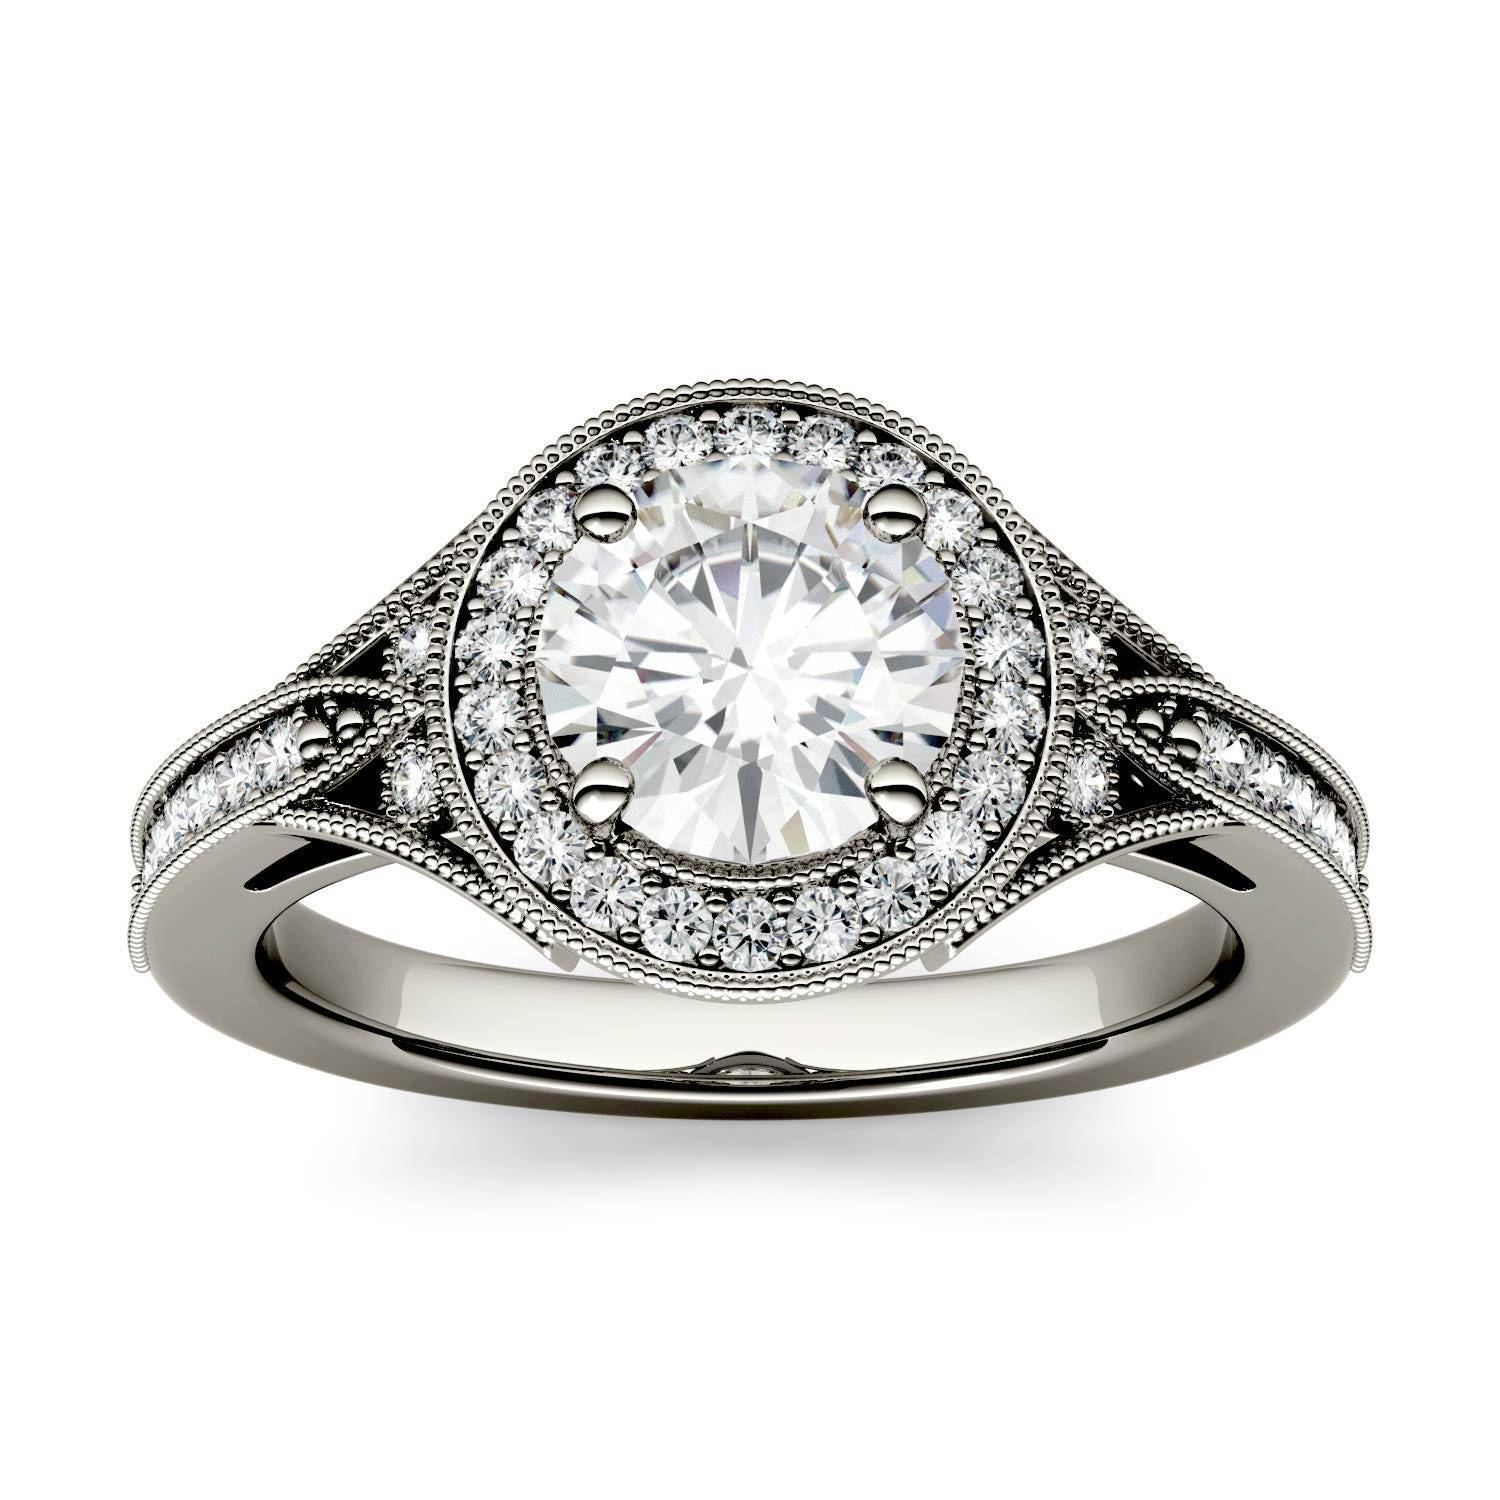 Charles & Colvard Milgrain Halo with Side Accents Engagement Ring in 14K White Gold, Size: 7, 1.25CTW Round Forever One - Near-Colorless Moissanite Charles & Colvard  - White Gold - Size: 7